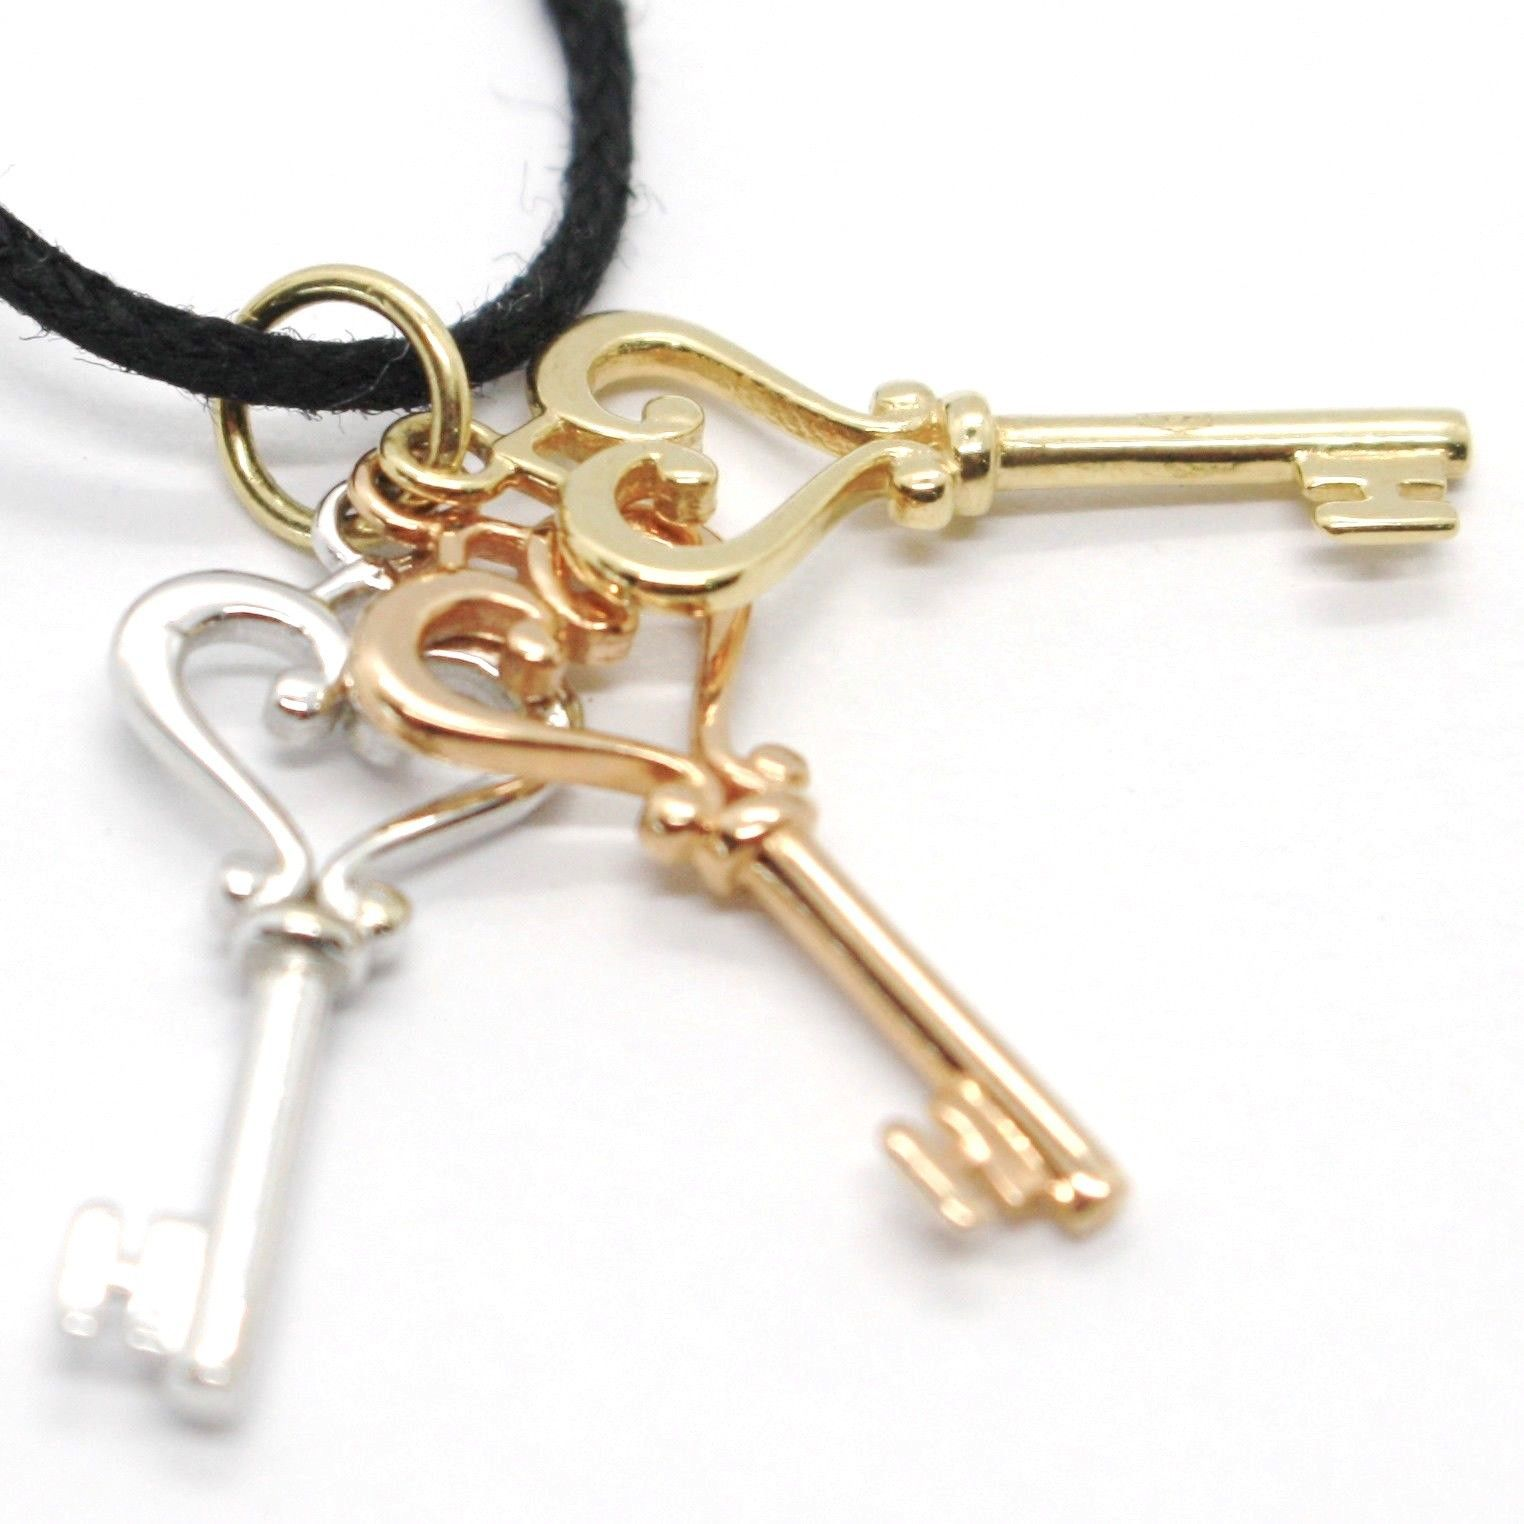 18K WHITE ROSE YELLOW GOLD TRIPLE KEY PENDANT, KEYS CHARM, HEART, MADE IN ITALY